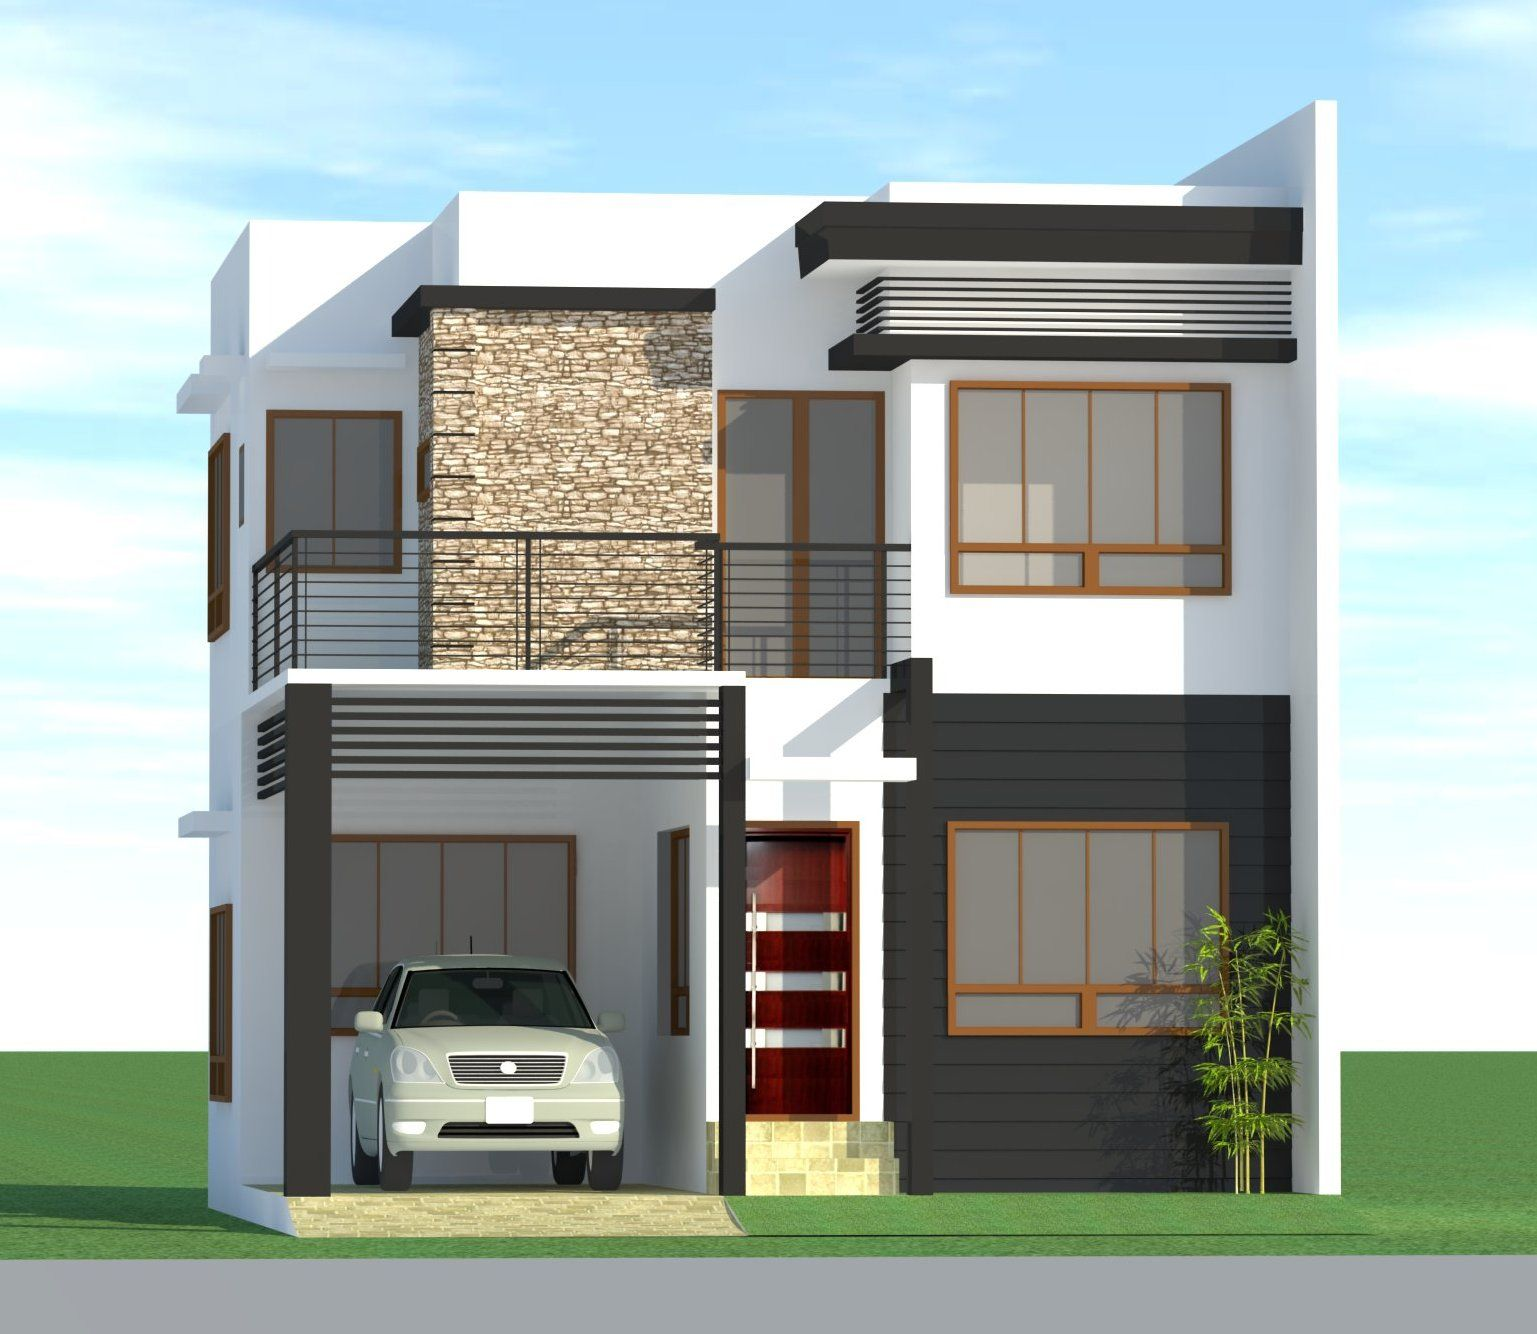 Philippines house design images 3 home design ideas for Small modern home designs